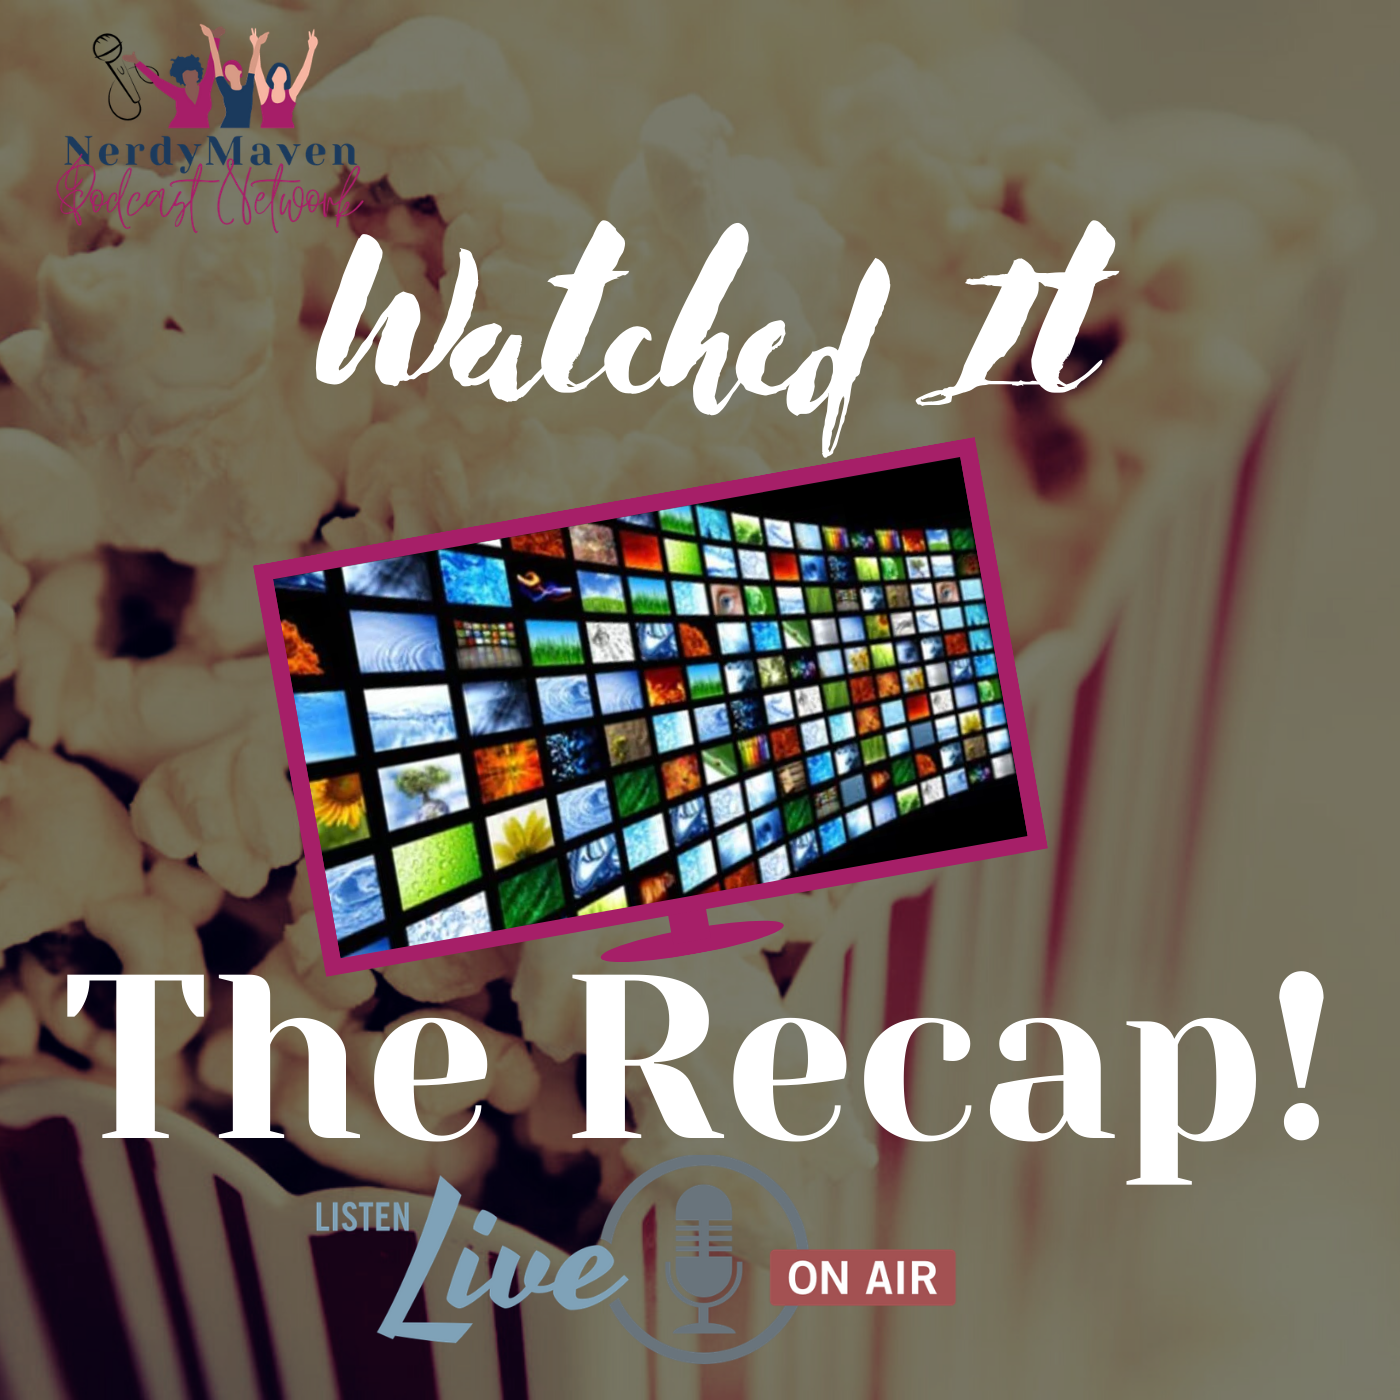 The Recap! Watched It podcast show image